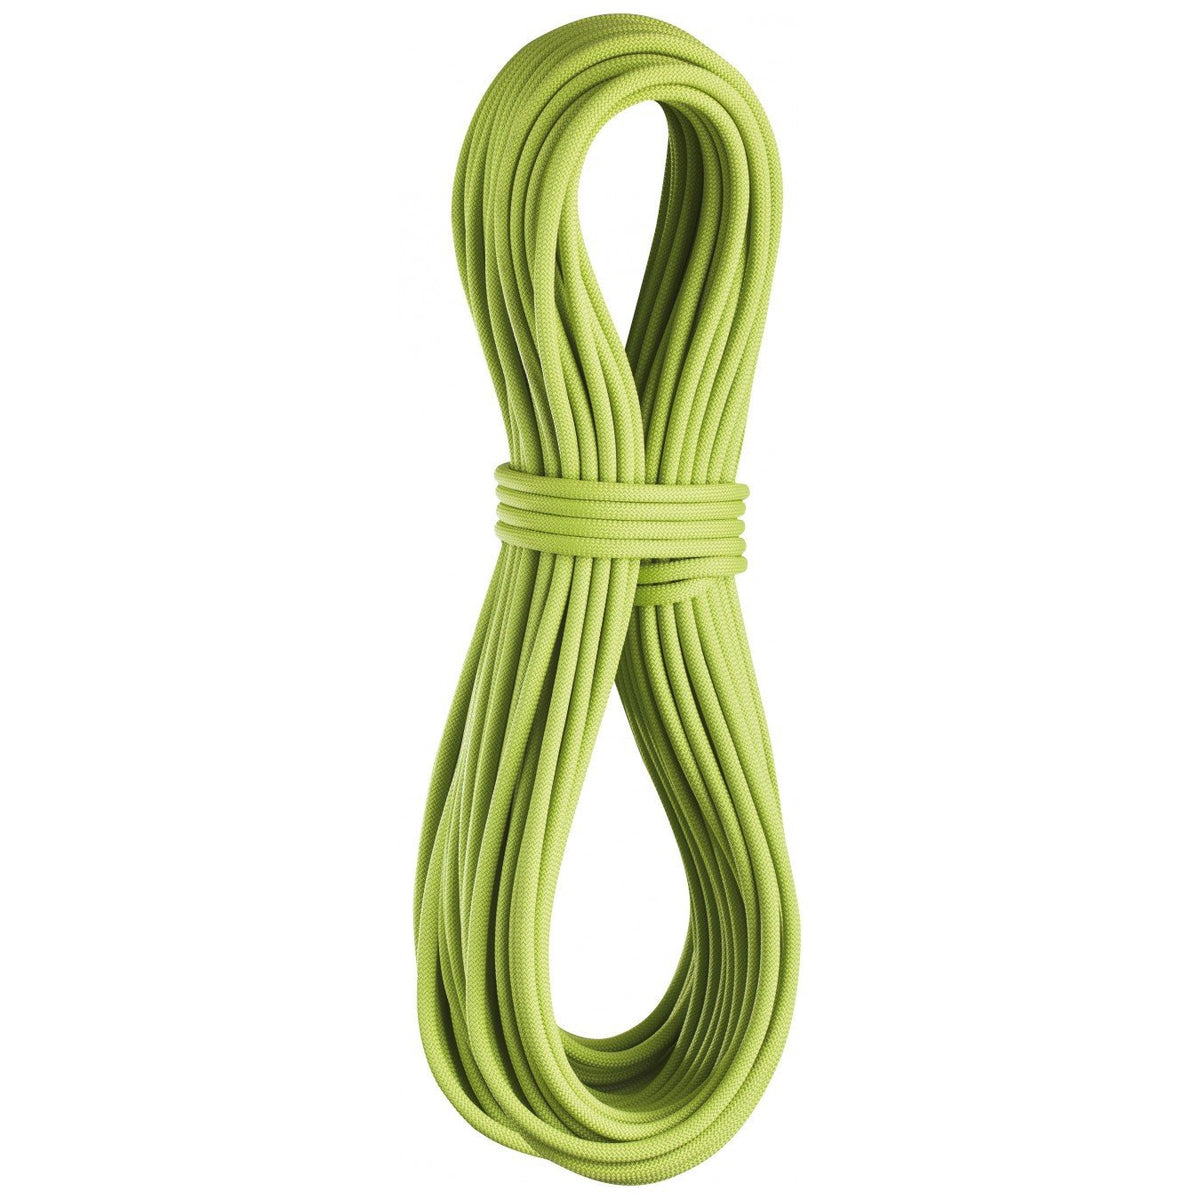 Edelrid Apus Pro Dry 7.9mm x 60m climbing rope, in green colour